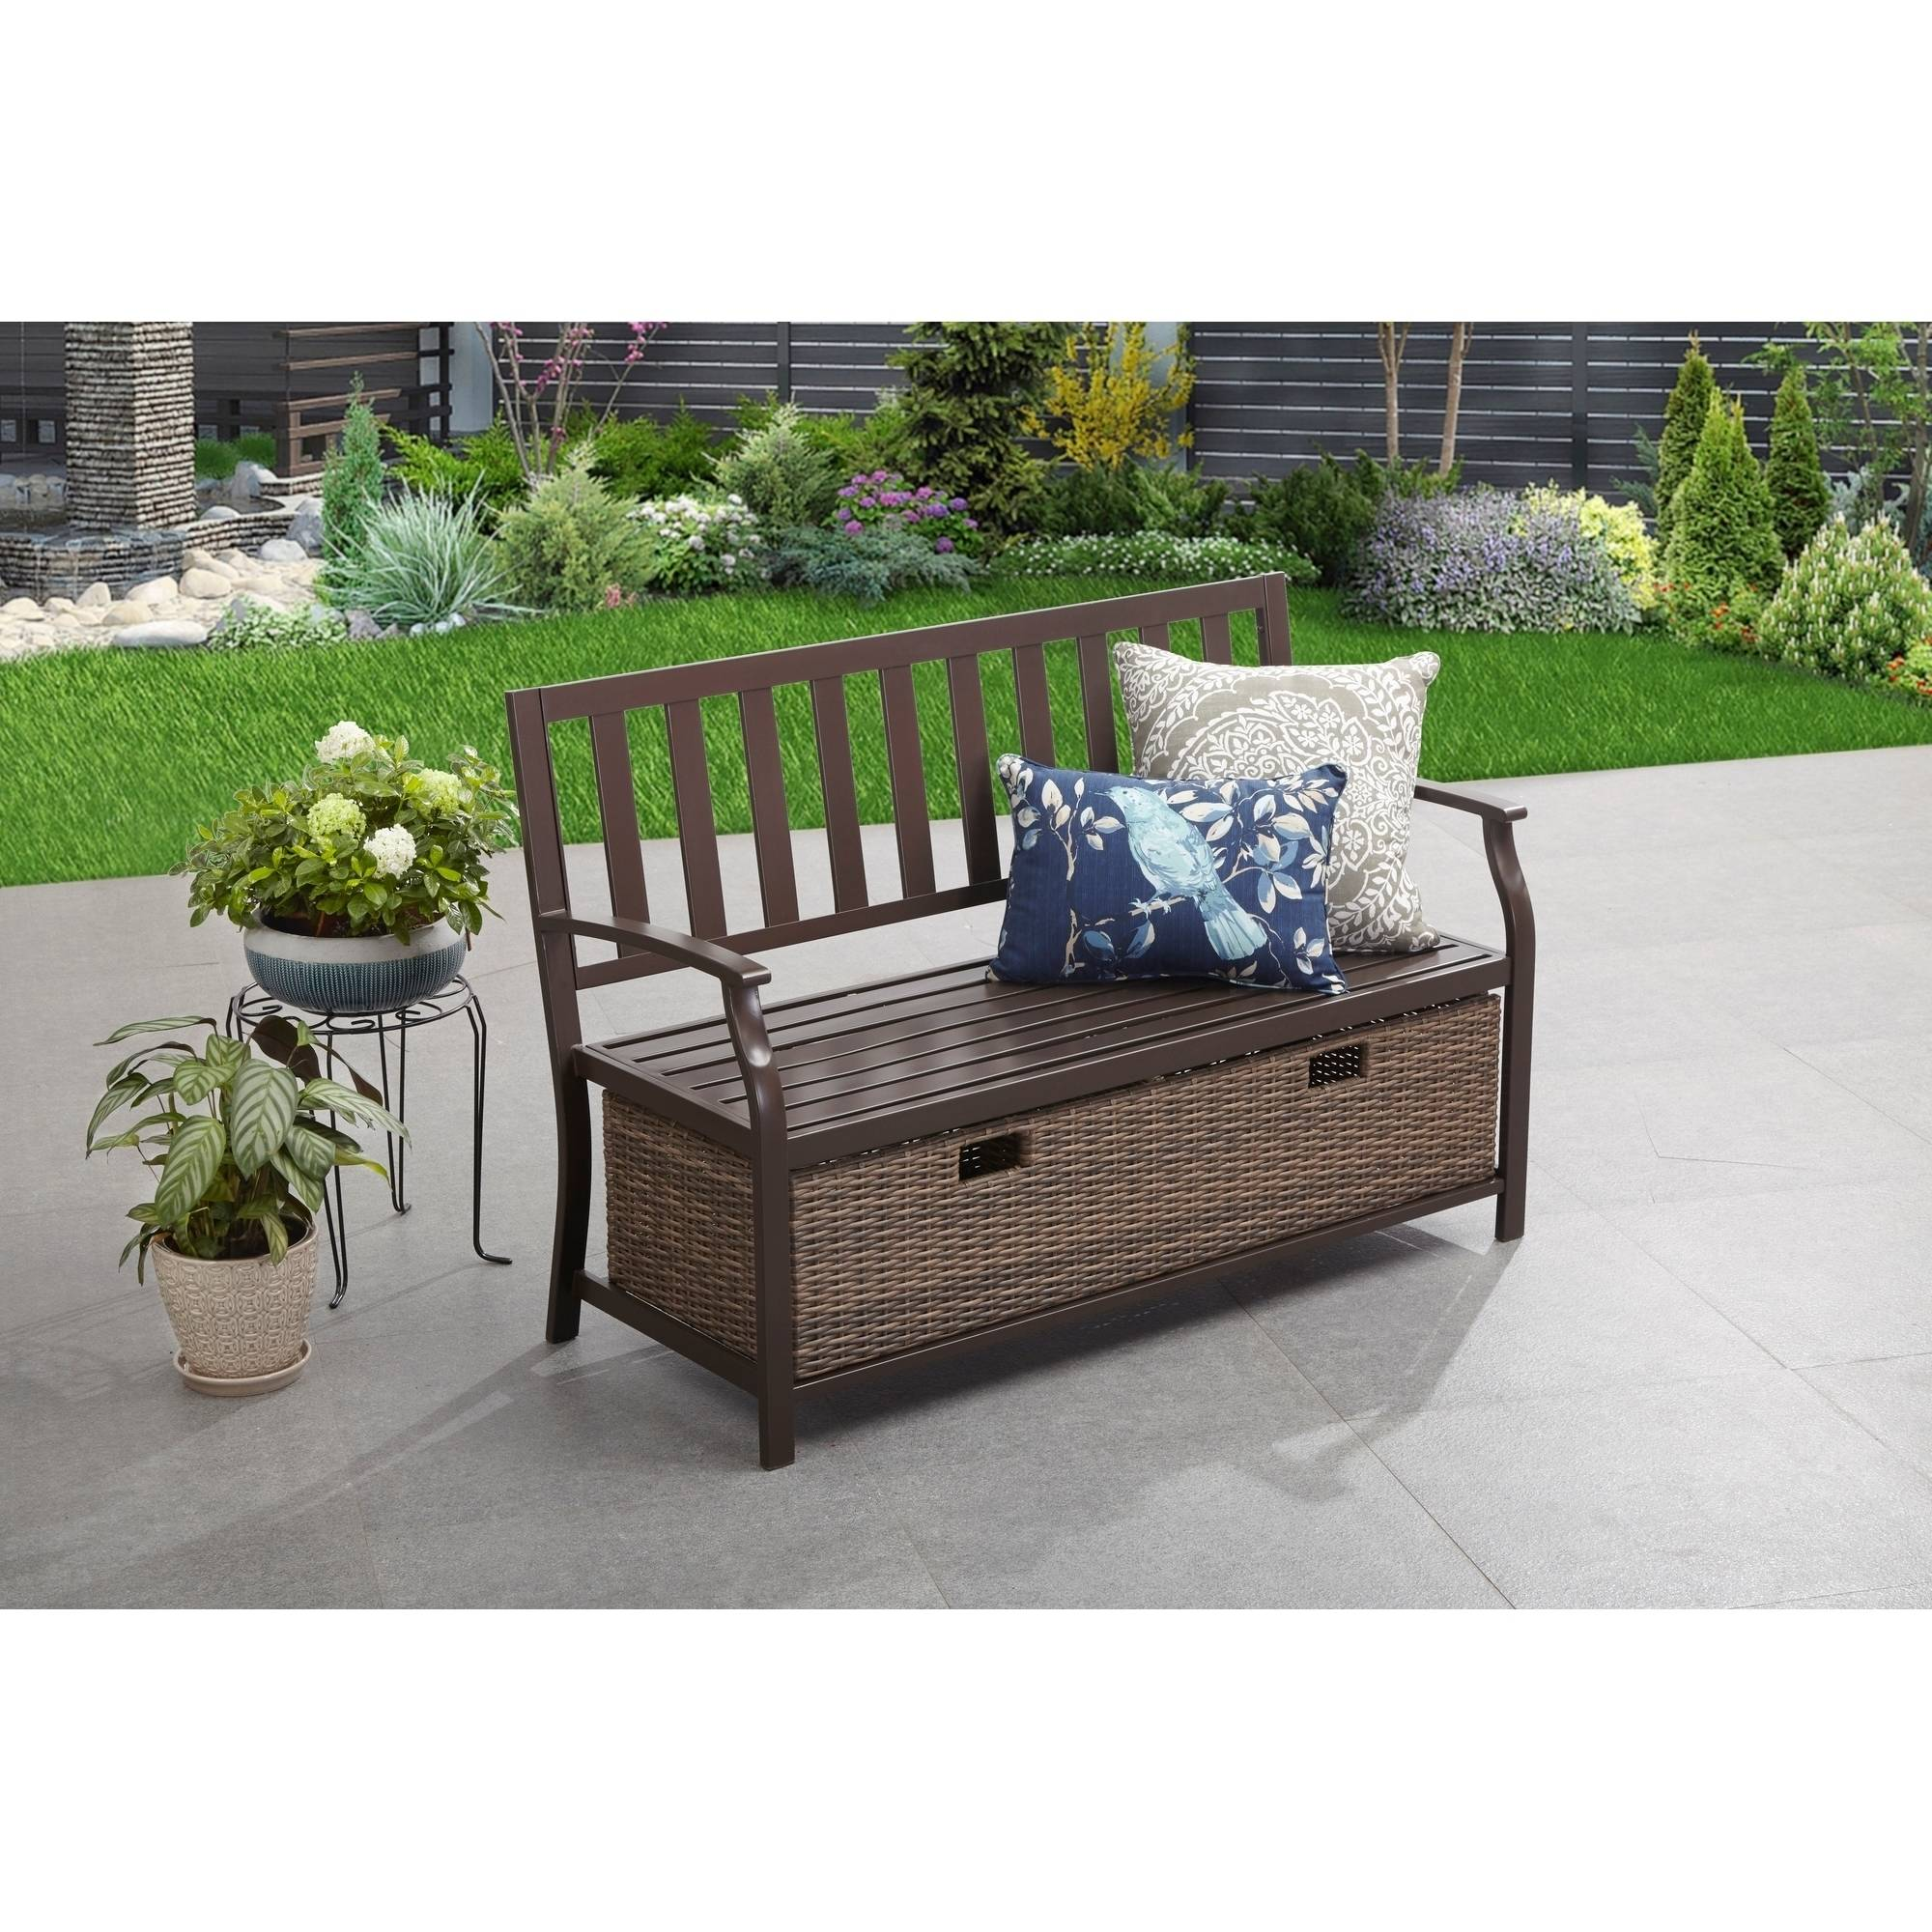 Better Homes & Gardens Camrose Farmhouse Outdoor Bench with Wicker Storage Box